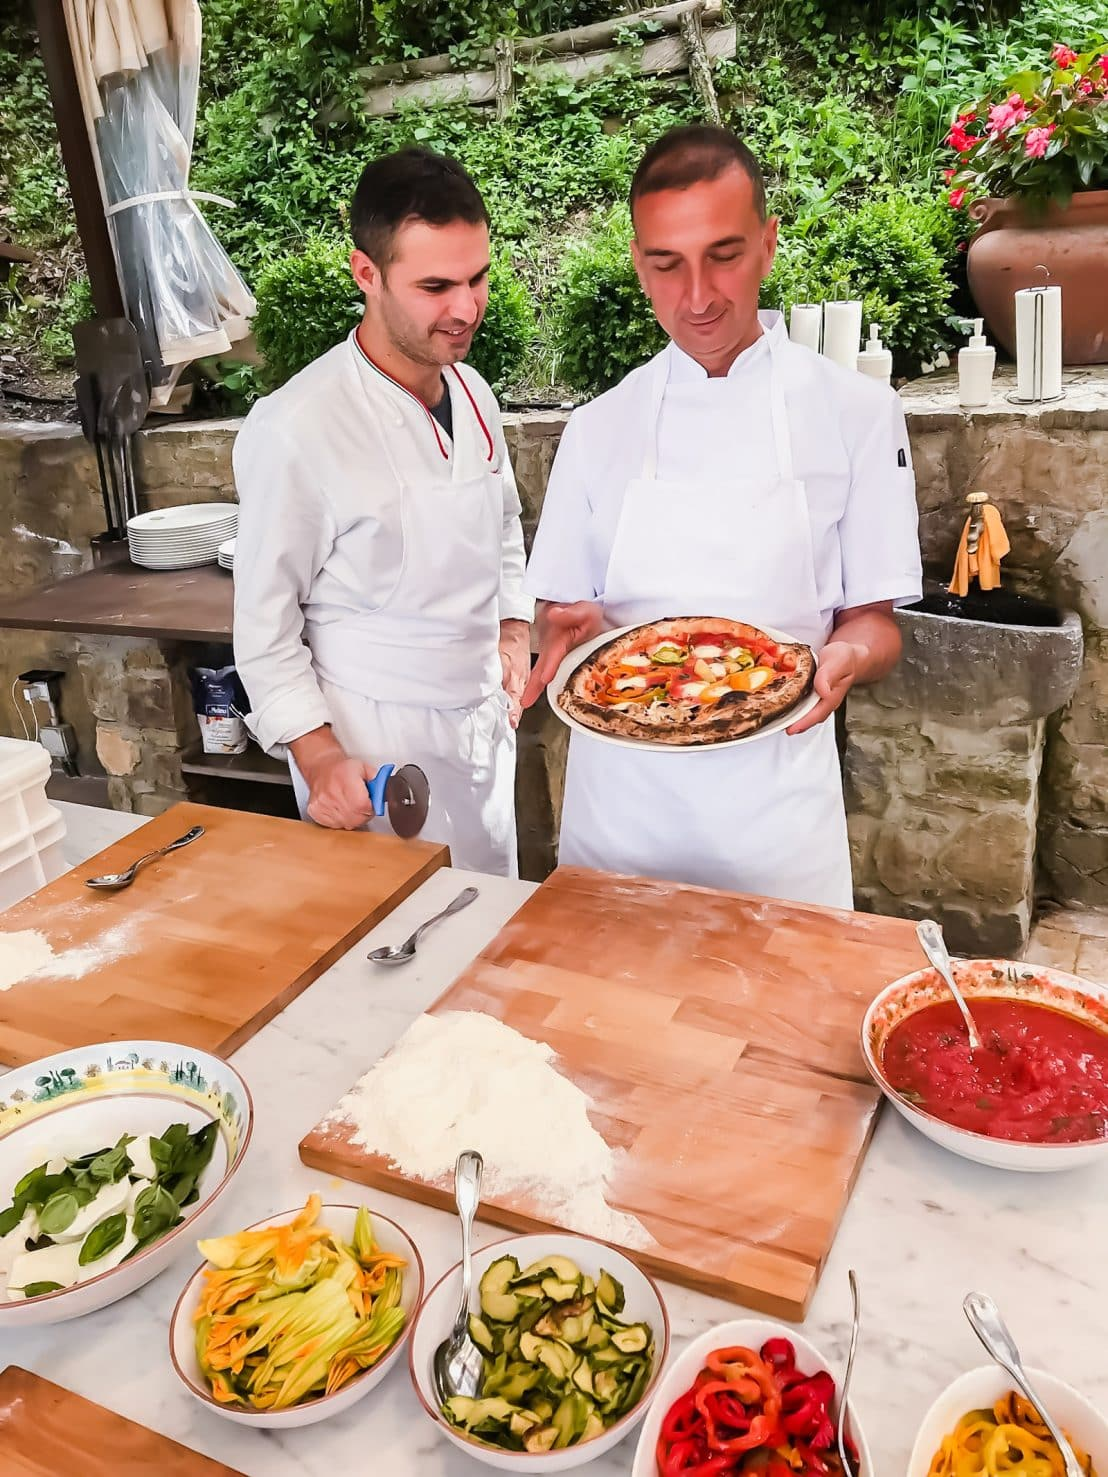 A photo of two Italian chefs doing a pizza cooking demonstration outdoors.